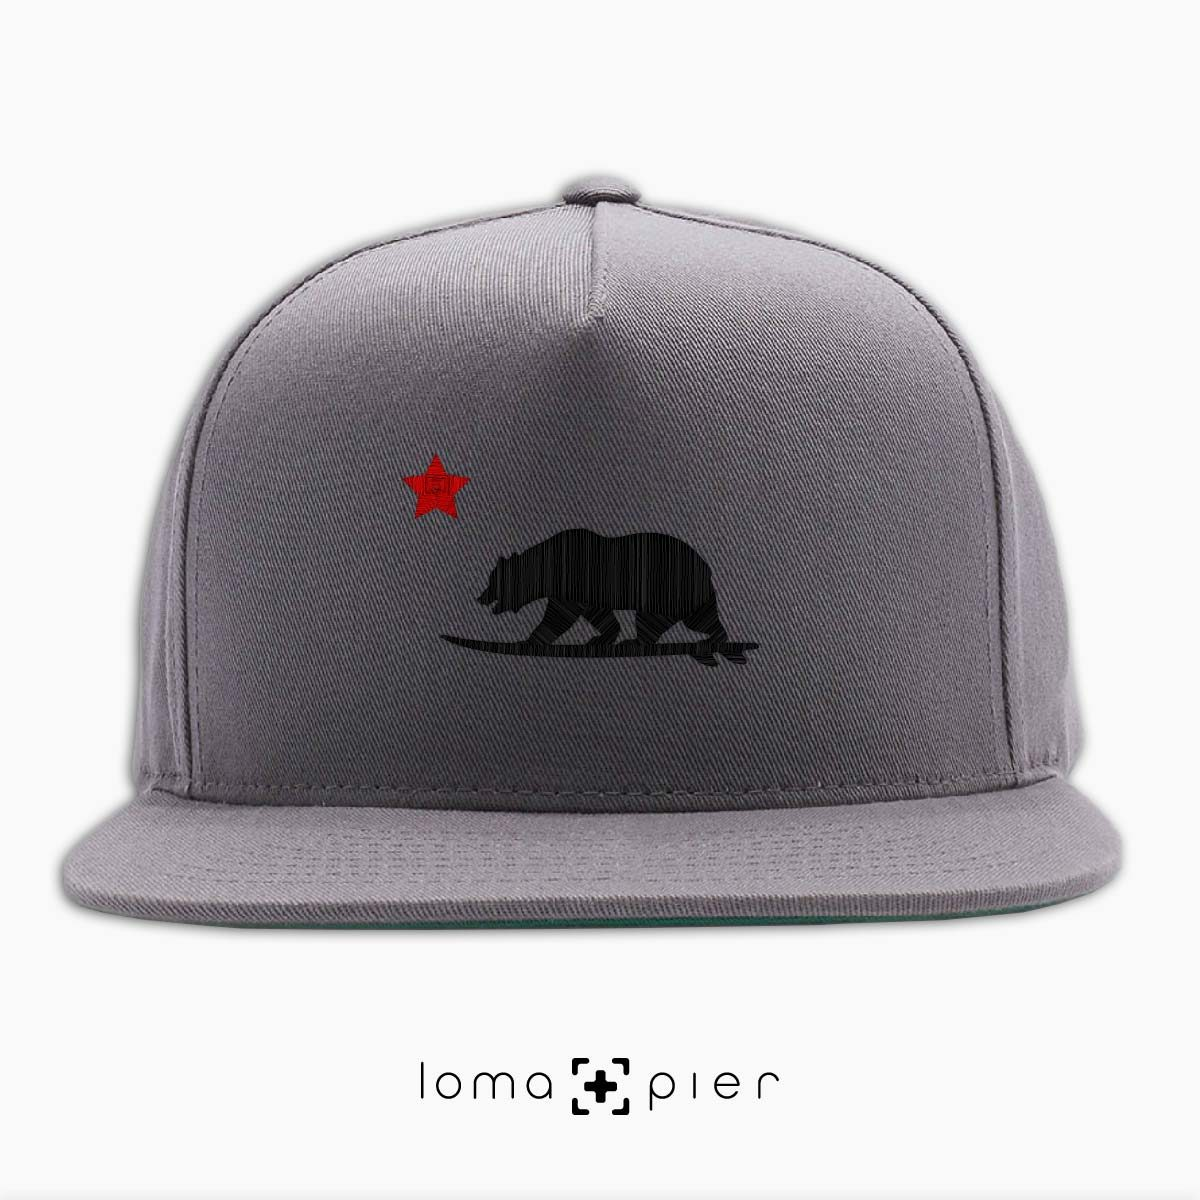 CALI SURFER icon embroidered on a grey classic snapback hat with black and red thread by loma+pier hat store